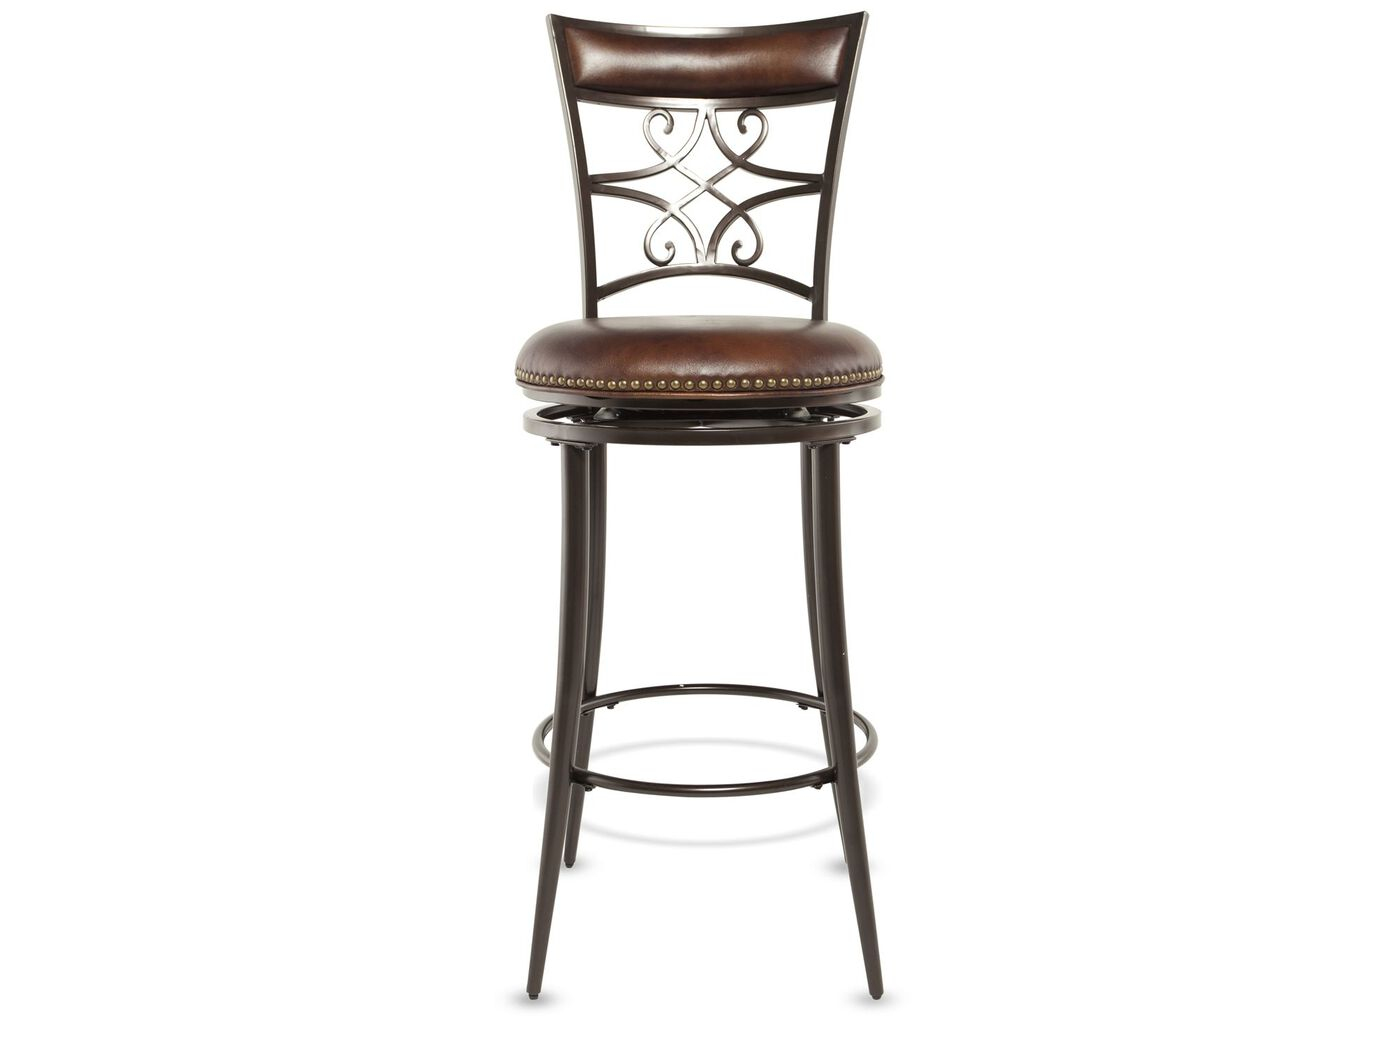 Casual 23quot Nailhead Accented Bar Stool in Brown Mathis  : HILLS 4492047830 from www.mathisbrothers.com size 1333 x 1000 jpeg 45kB